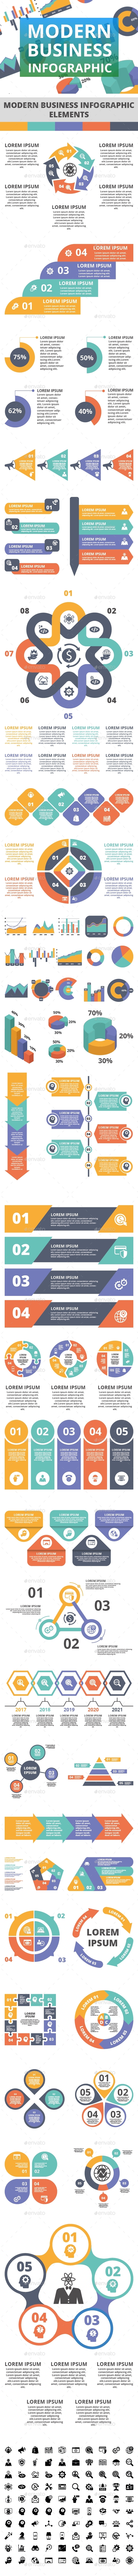 Modern Business Infographic - Infographics